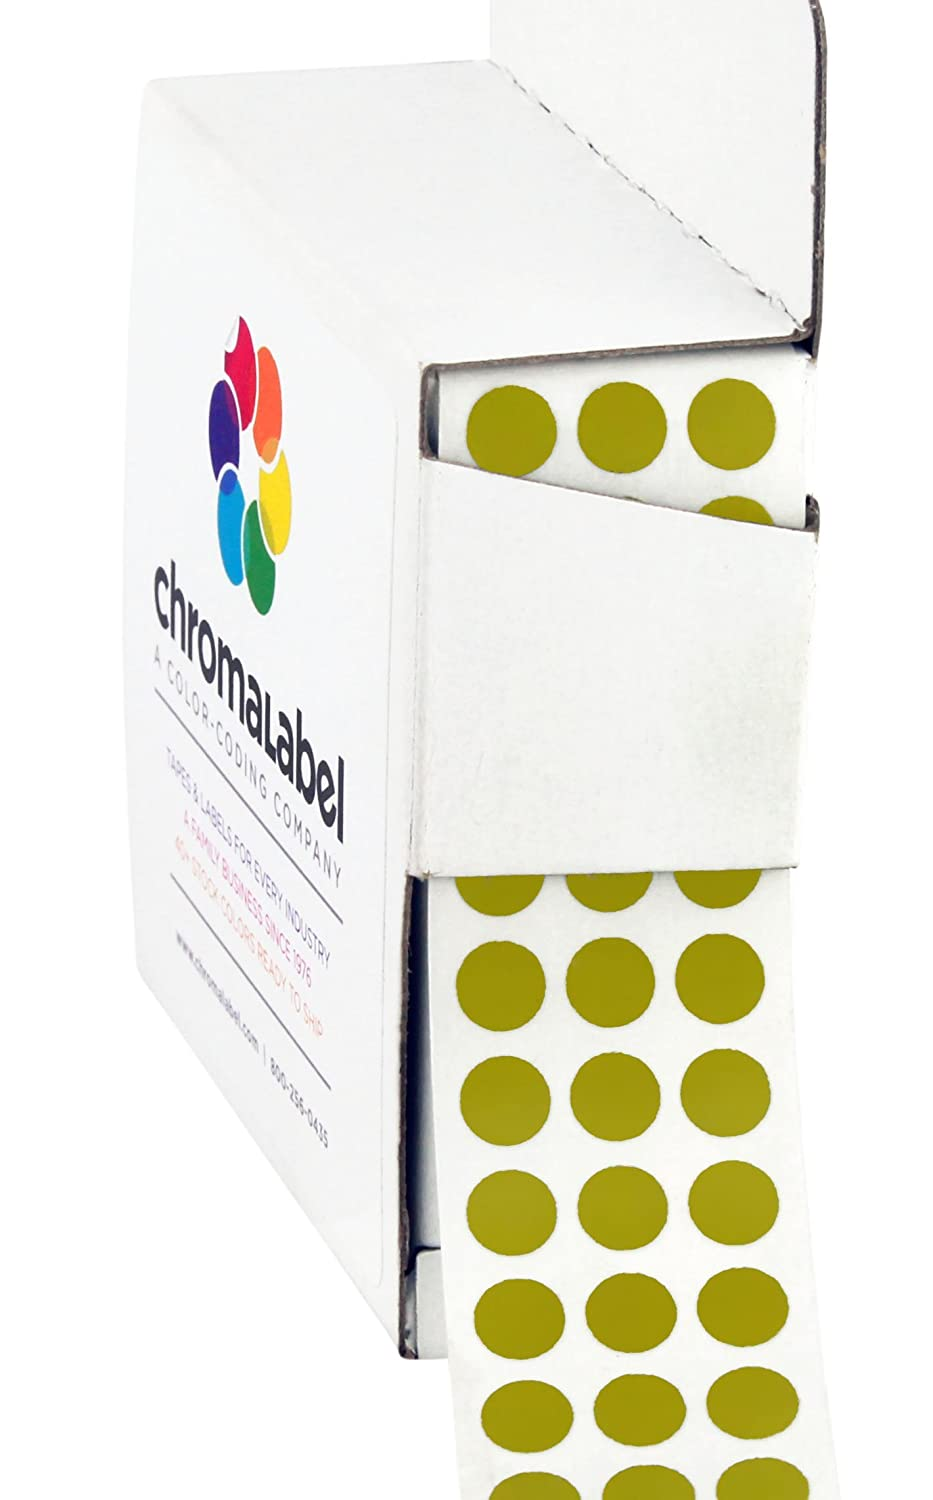 Olive Color Code Amazon.com : ChromaLabel 1-4 inch Color-Code Dot Labels | 1, 000-Dispenser  Box (Olive) : Office Products